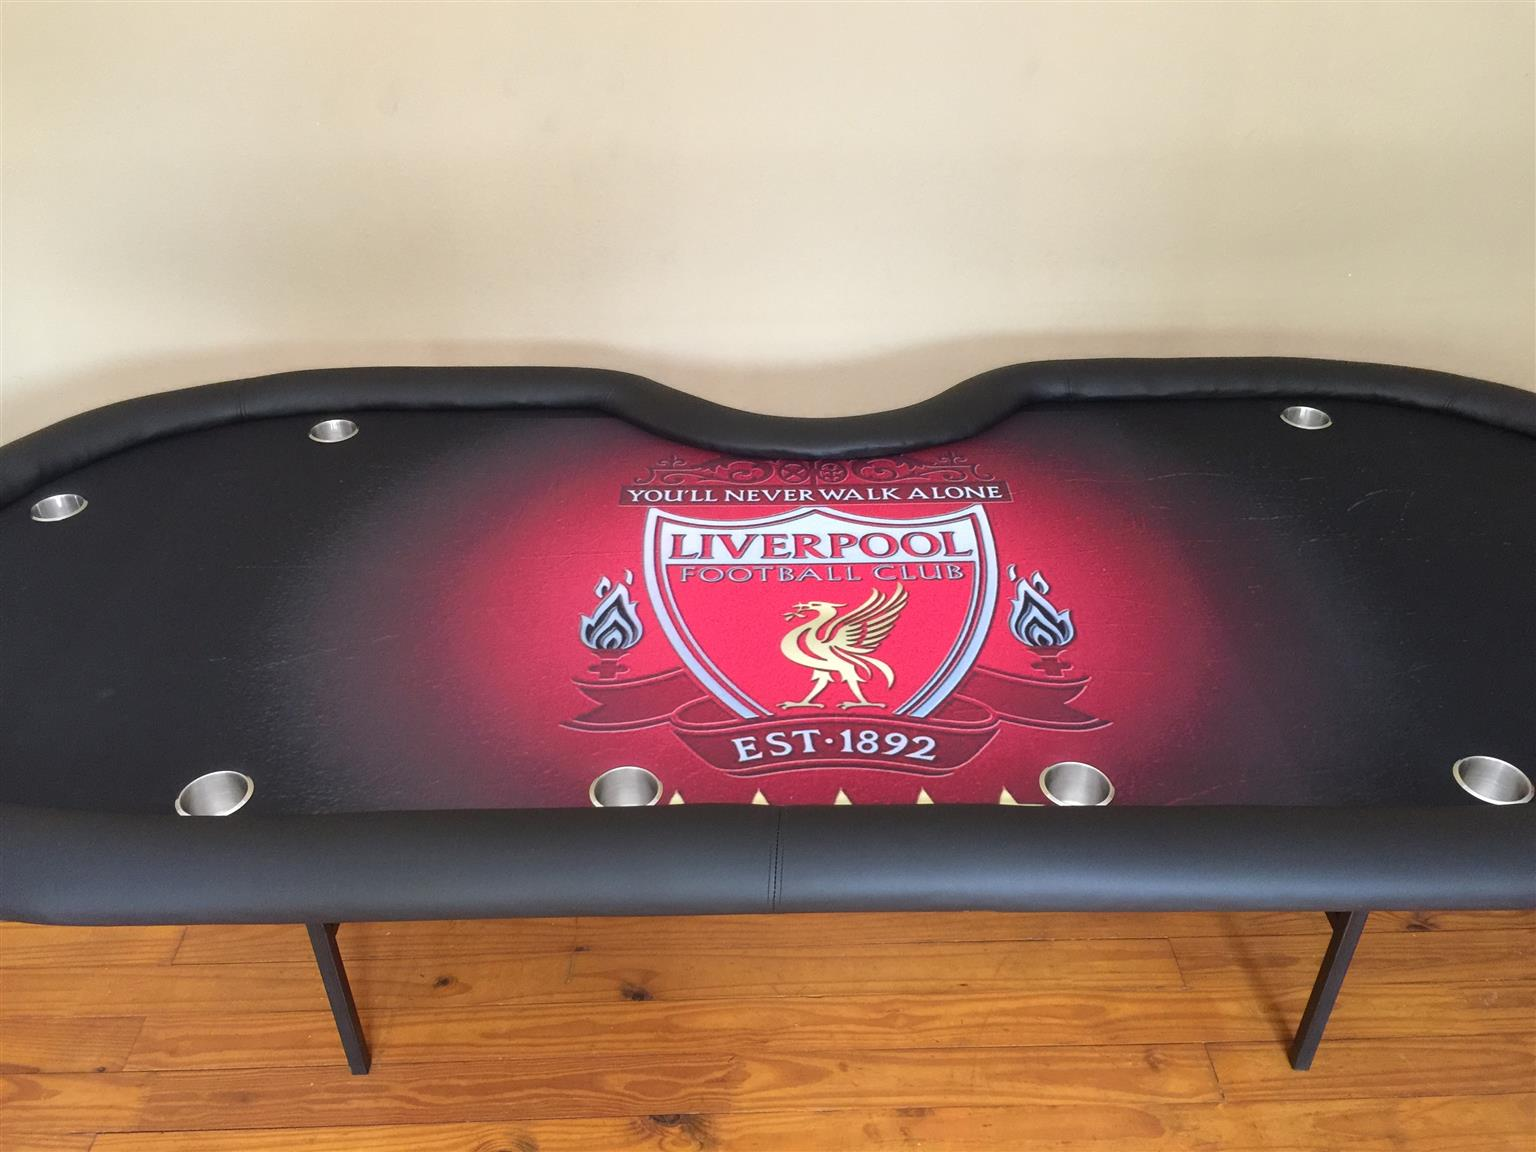 New full size piker table for sale